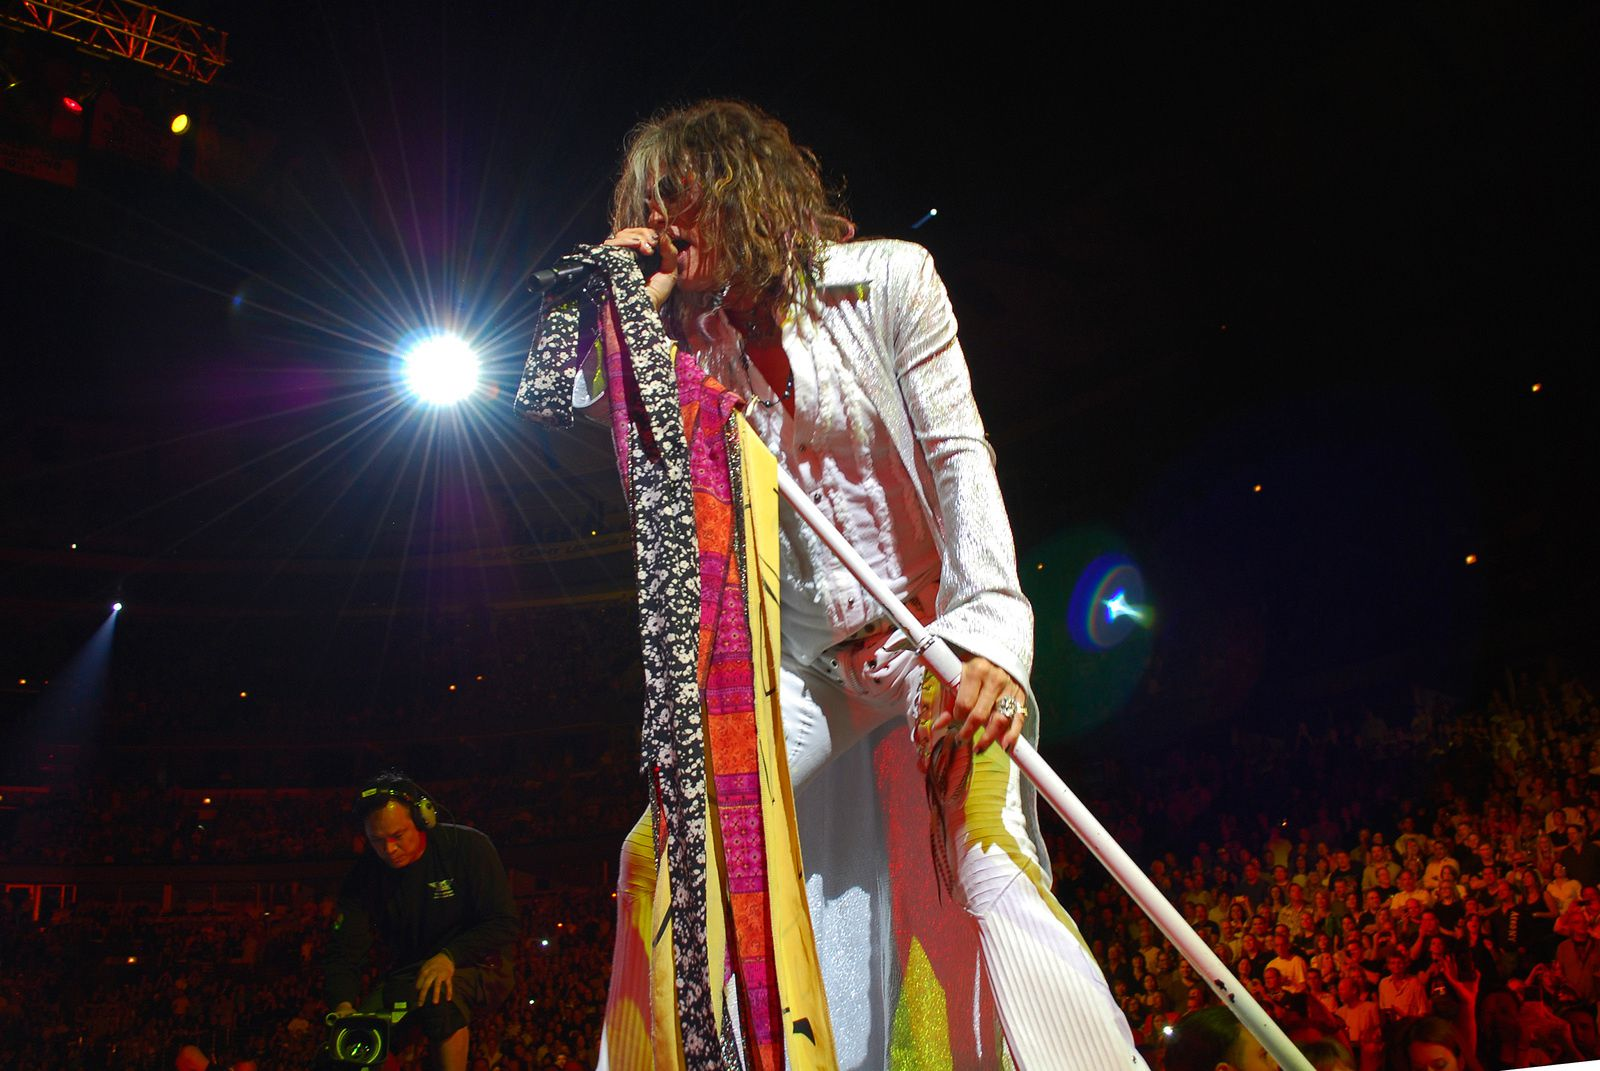 Steven Tyler - 2012, june 22 - concert performance at the United Center in Chicago, US